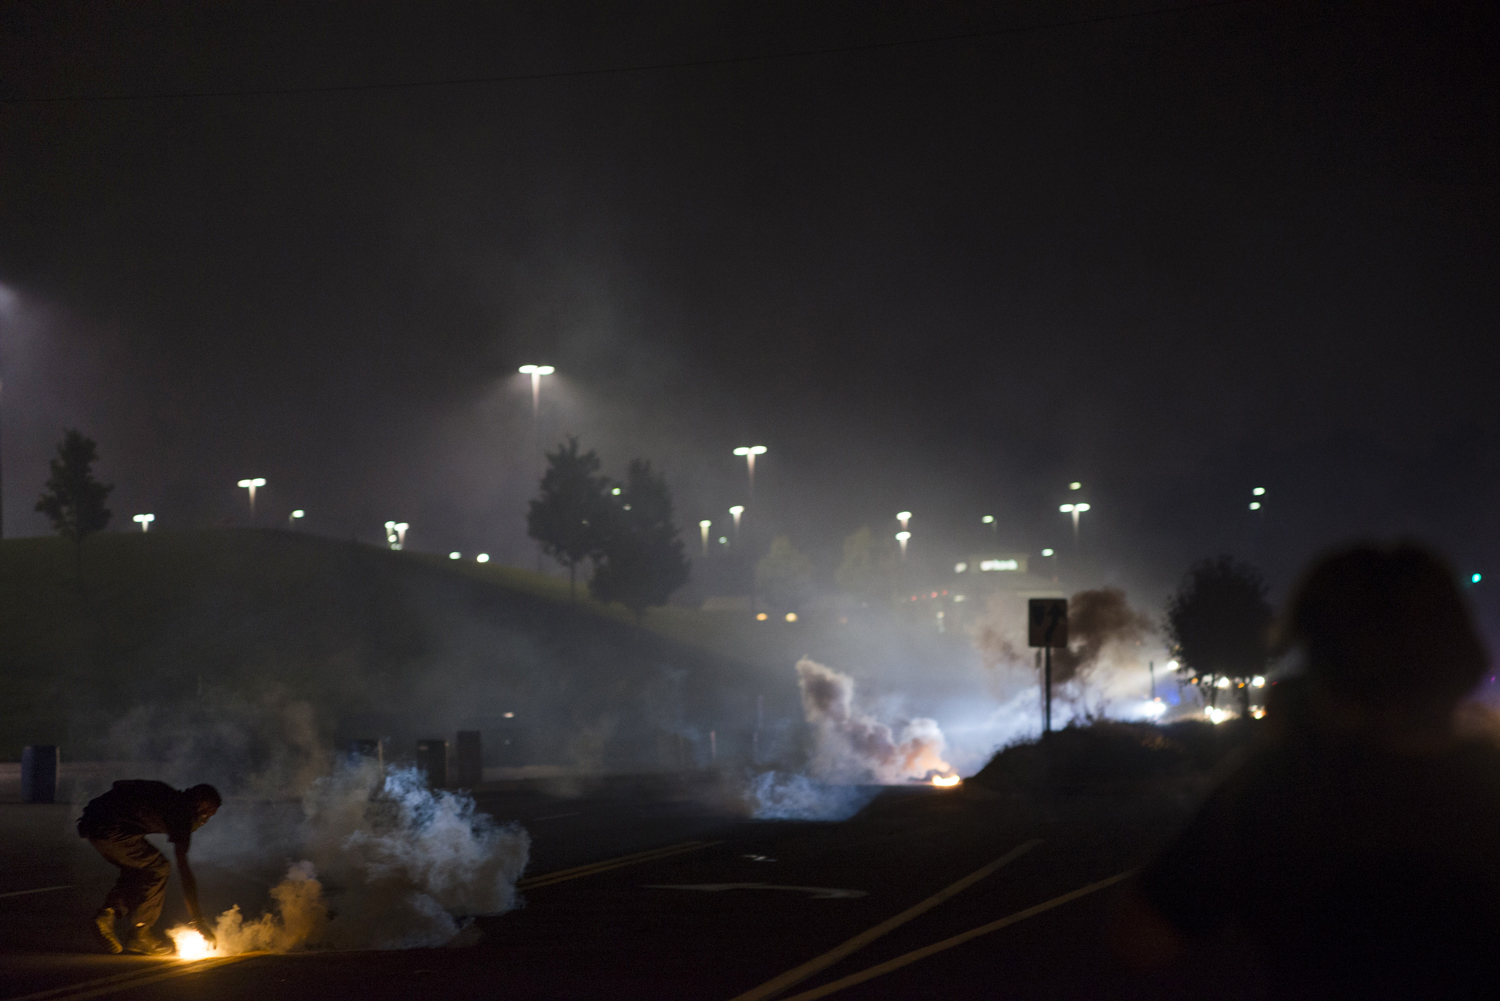 A protestor throws a canister of tear gas back at police during demonstrations in Ferguson, Mo. on Aug. 17, 2014.